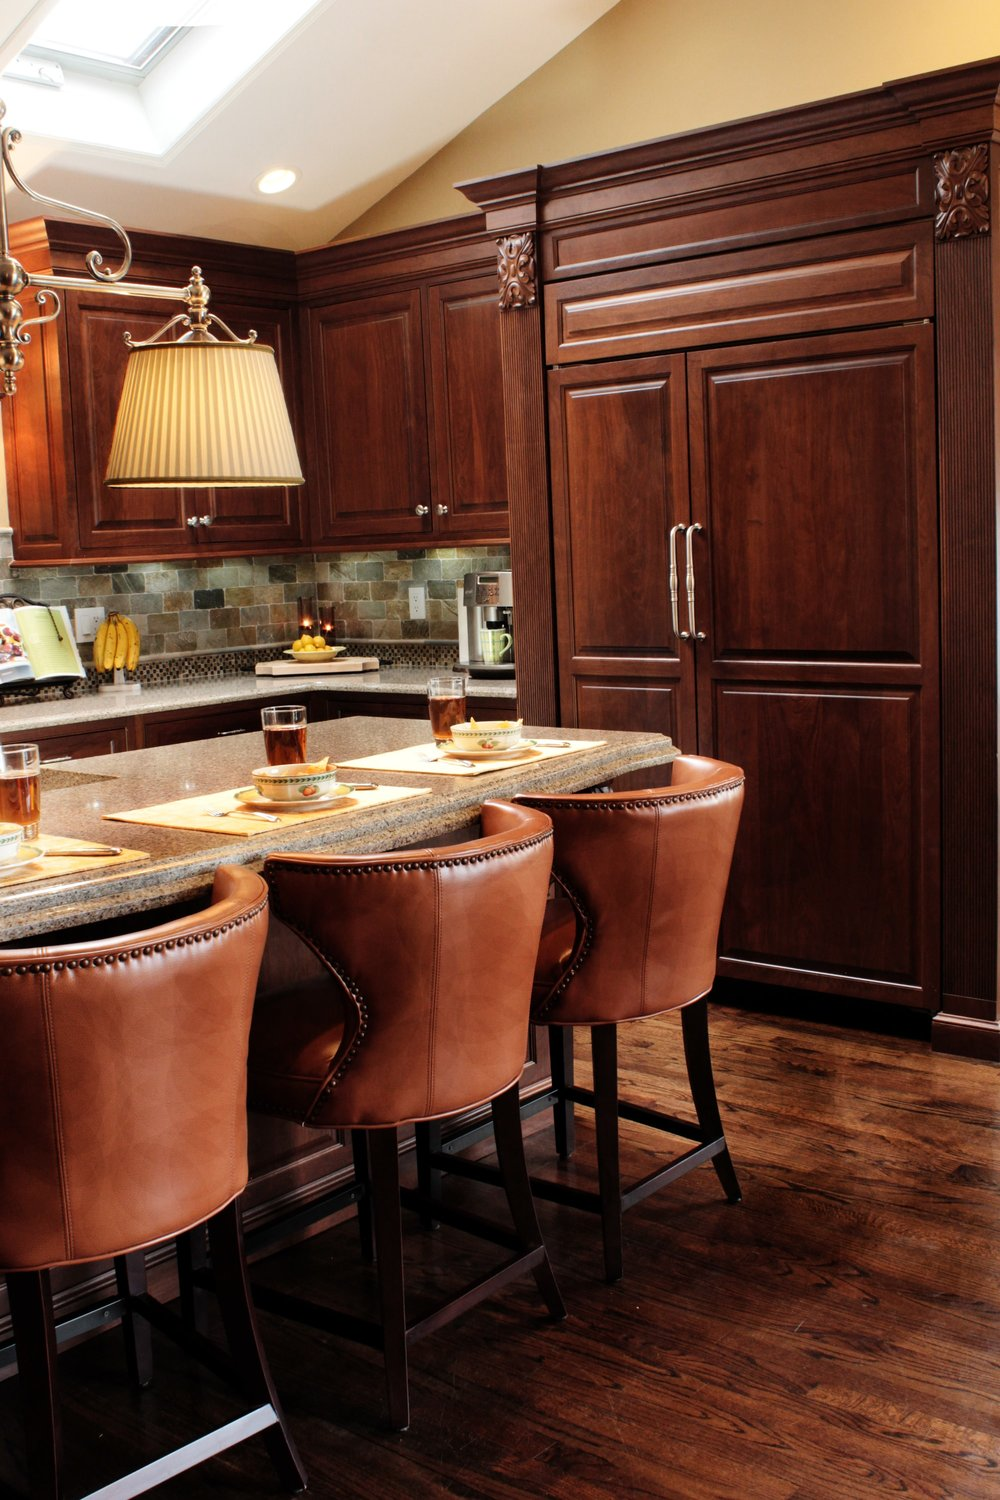 Traditional style kitchen with leather chairs